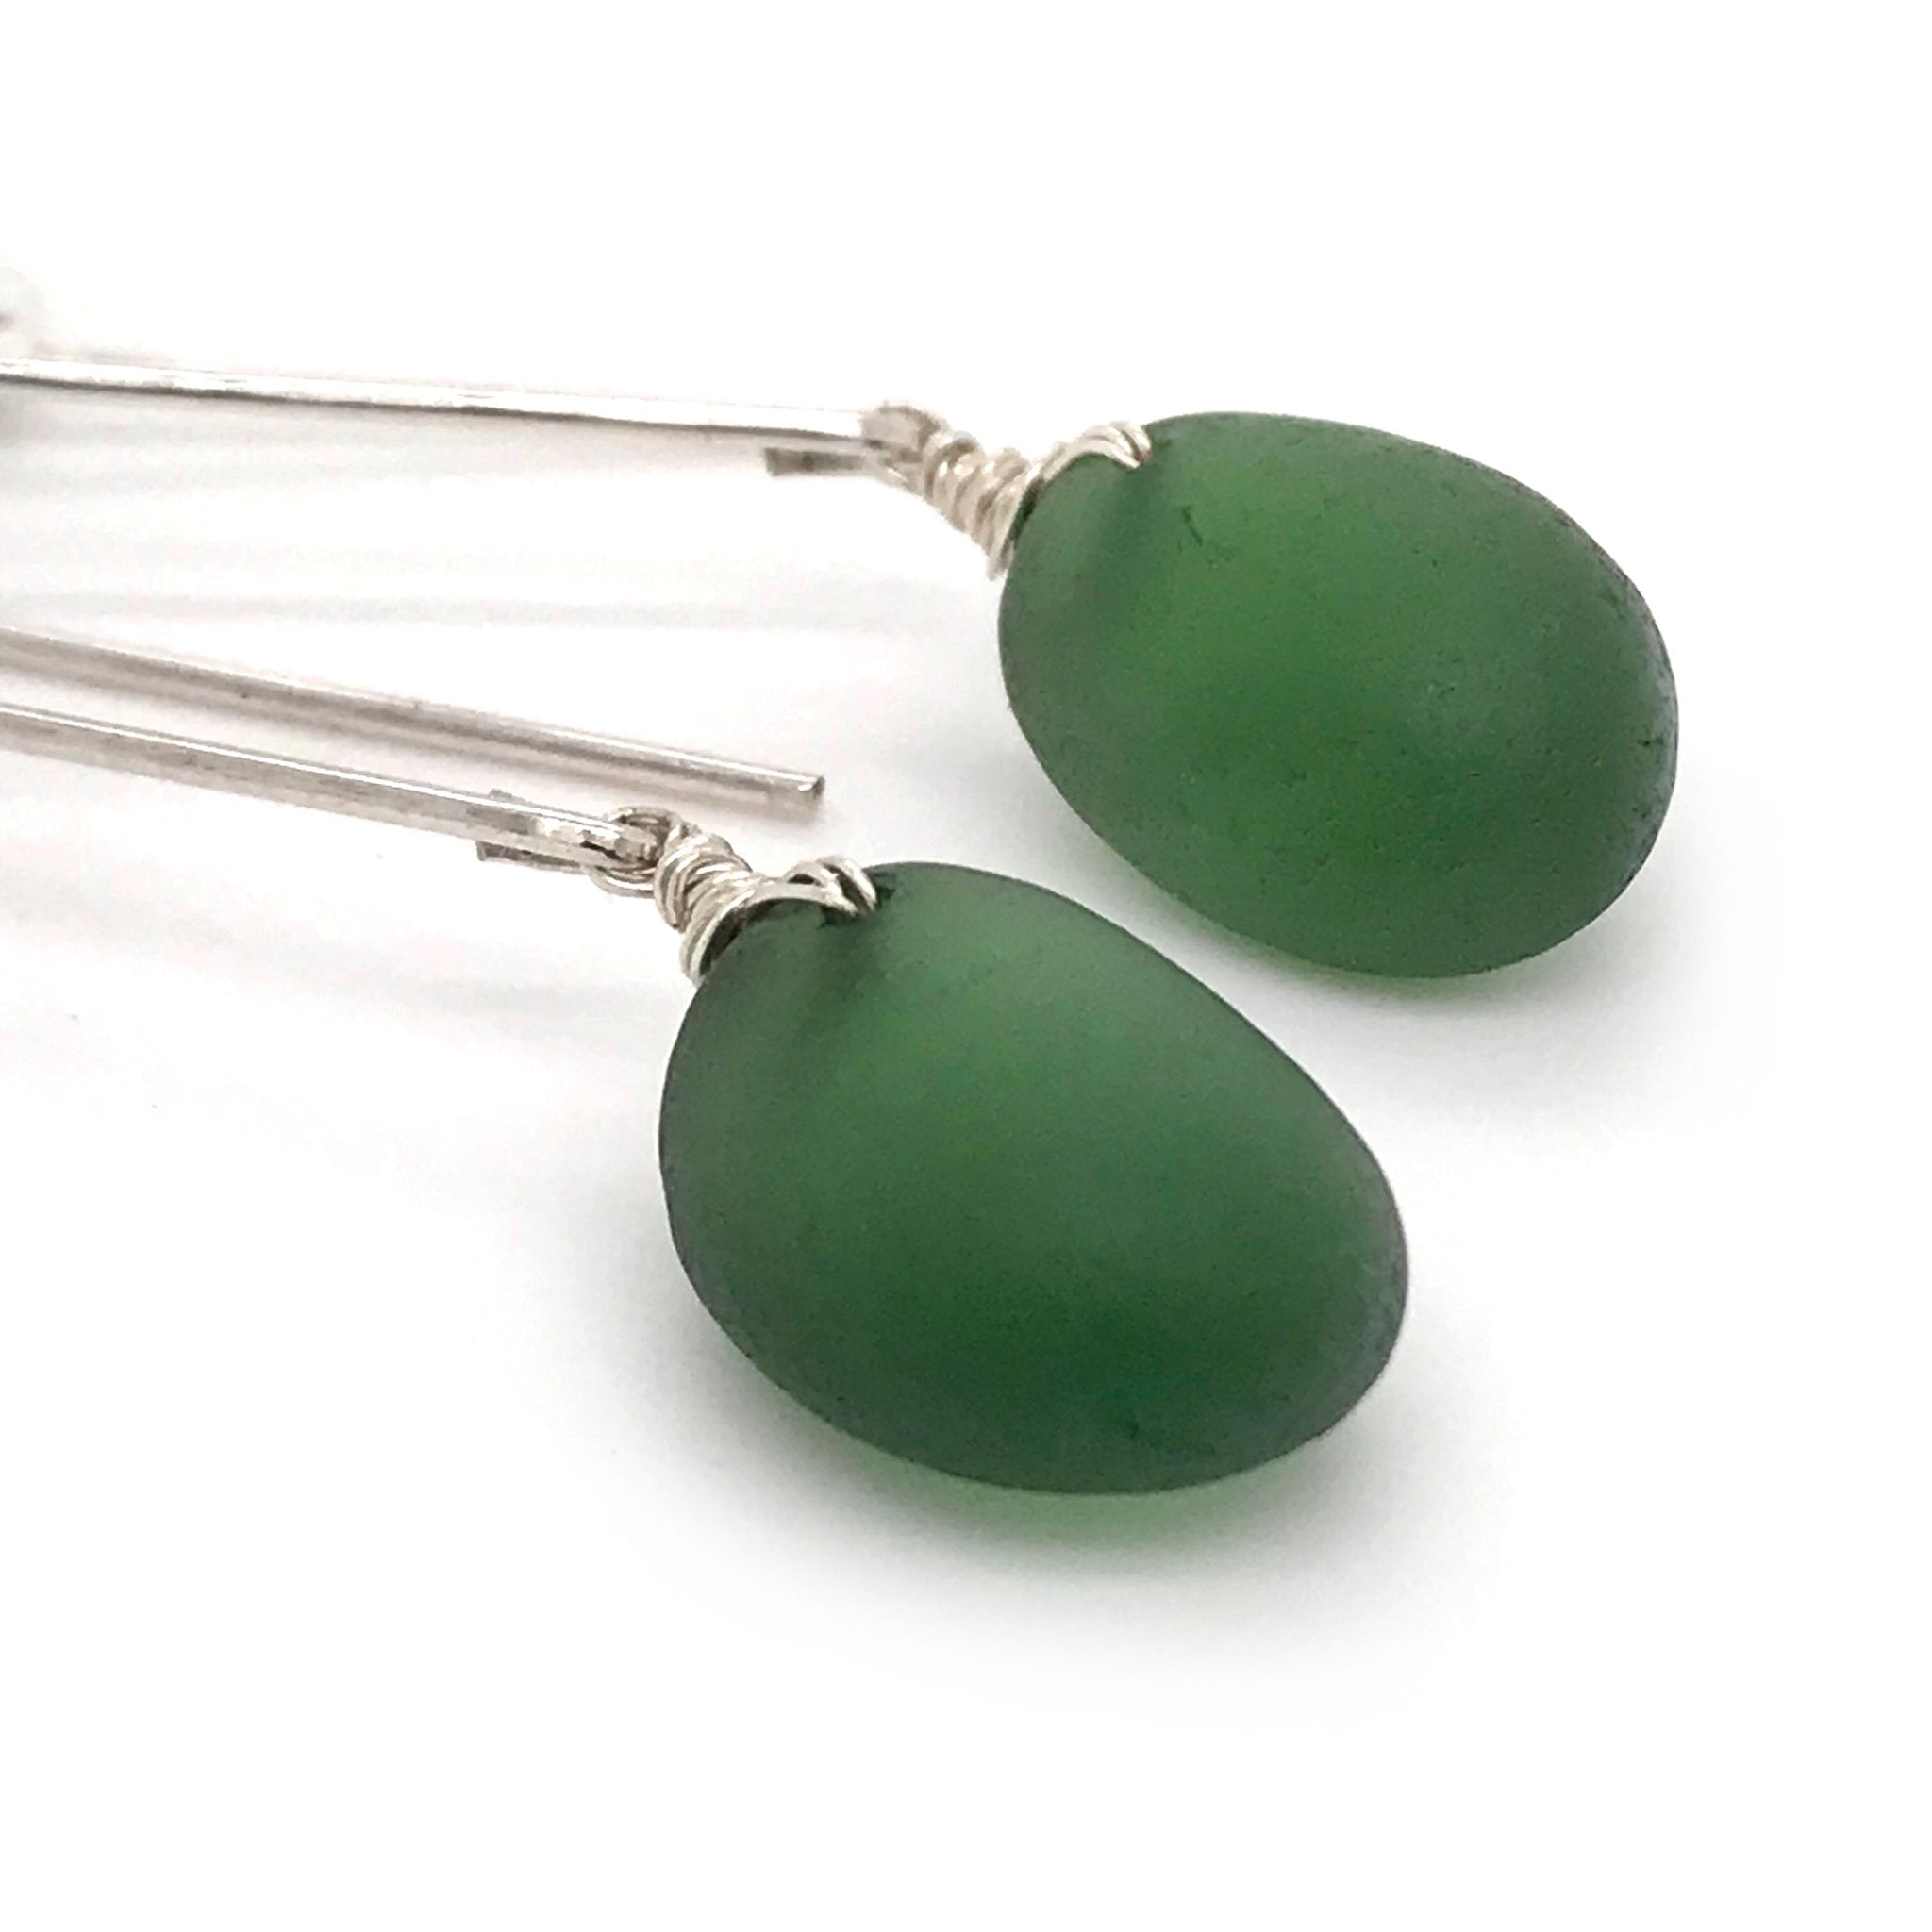 green earrings sea glass on sterling silver long drop design kriket broadhurst jewellery